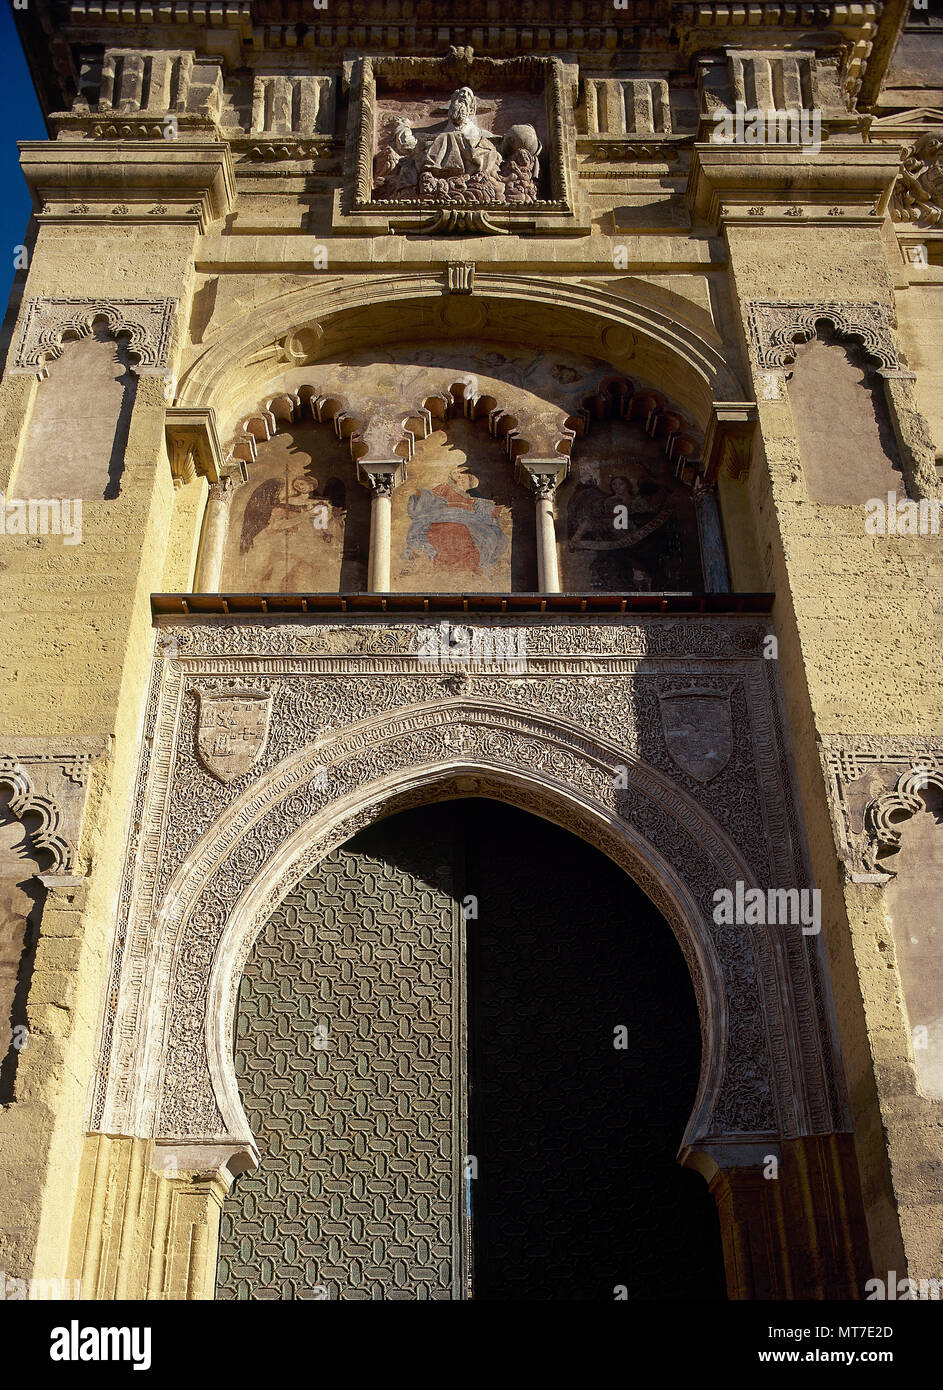 Cordoba, Andalusia, Spain. Great Mosque of Cordoba. Abd al-Rahman I ordered its construction in 784, with subsequent extensions. North facade, along calle Cardenal Herrero. Door of Pardon or Door of Forgiveness, built in the 10th century and modified in 1377 in Mudejar style. - Stock Image